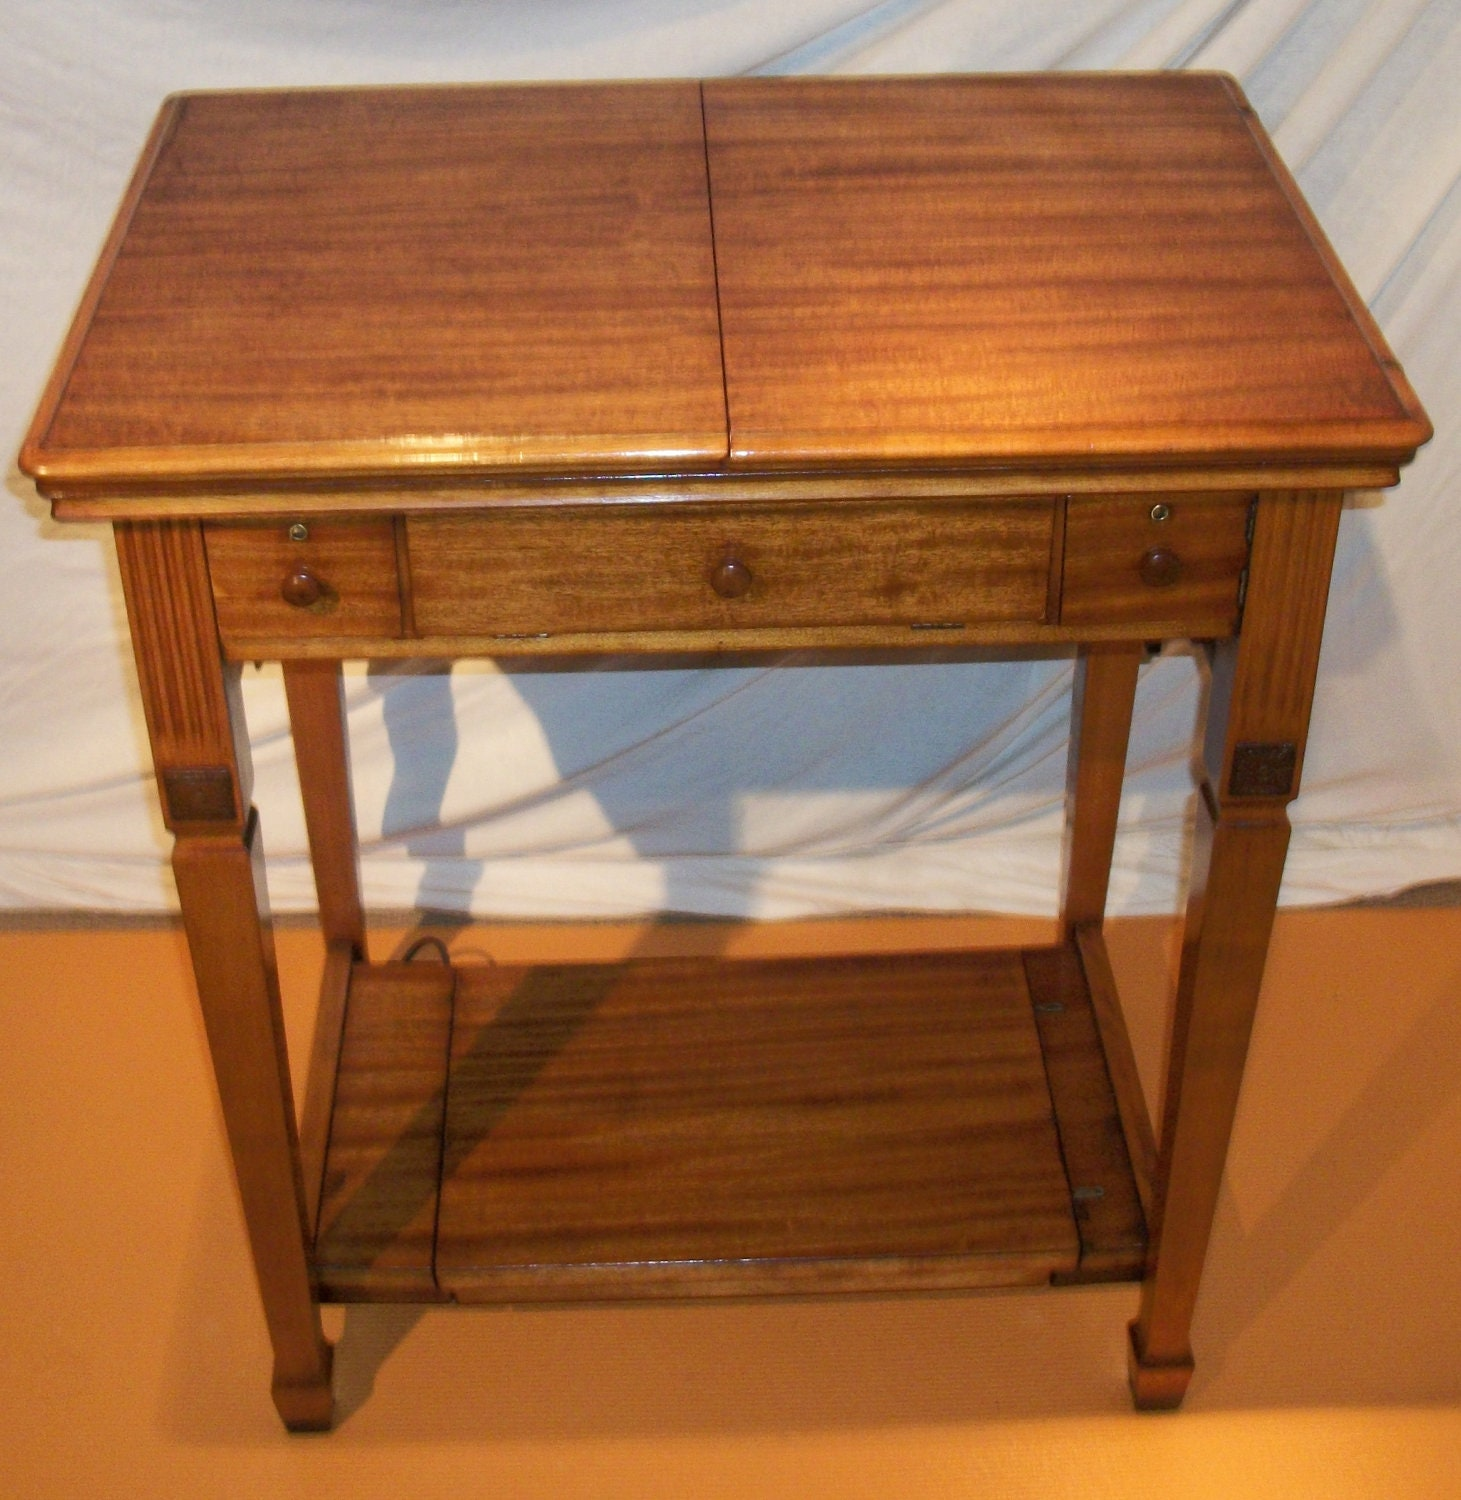 Singer sewing machine deluxe library table cabinet - Singer sewing machine table ...